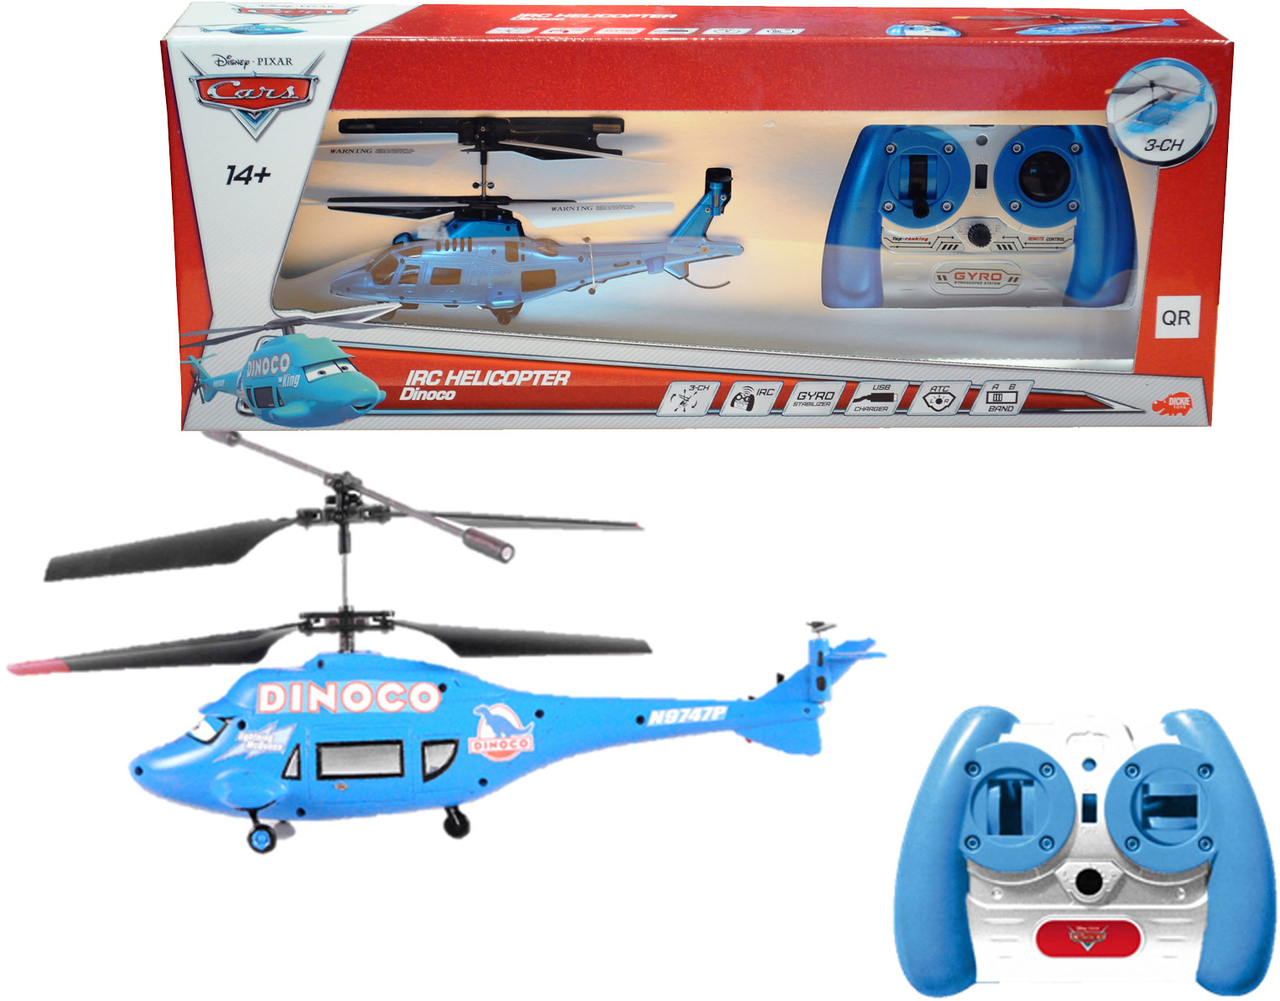 Super Disney Pixar Cars RC Dinoco Helikopter 19cm - Real Good Stuff BI-63